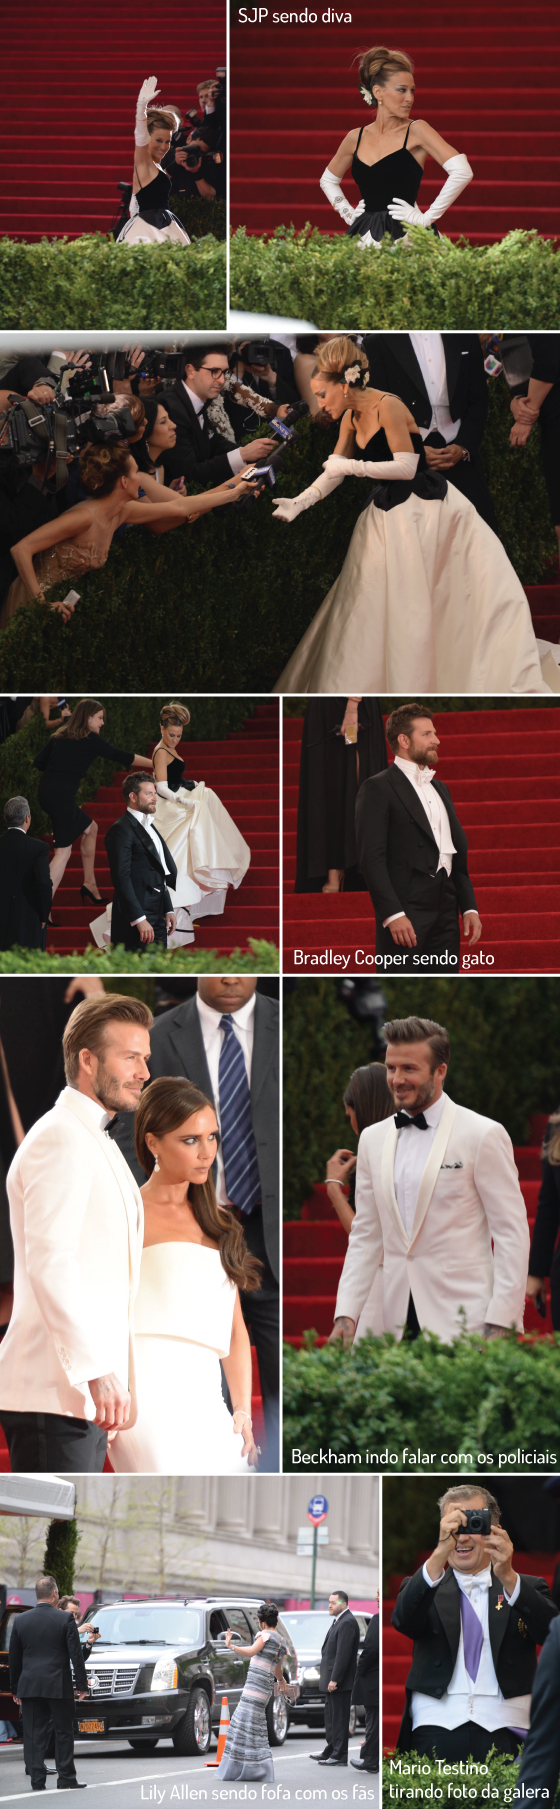 met-gala-fotos-celebridades-watch-live-ball-2014-bradley-cooper-sjp-vestidos-red-carpet-assistir-ny-new-york